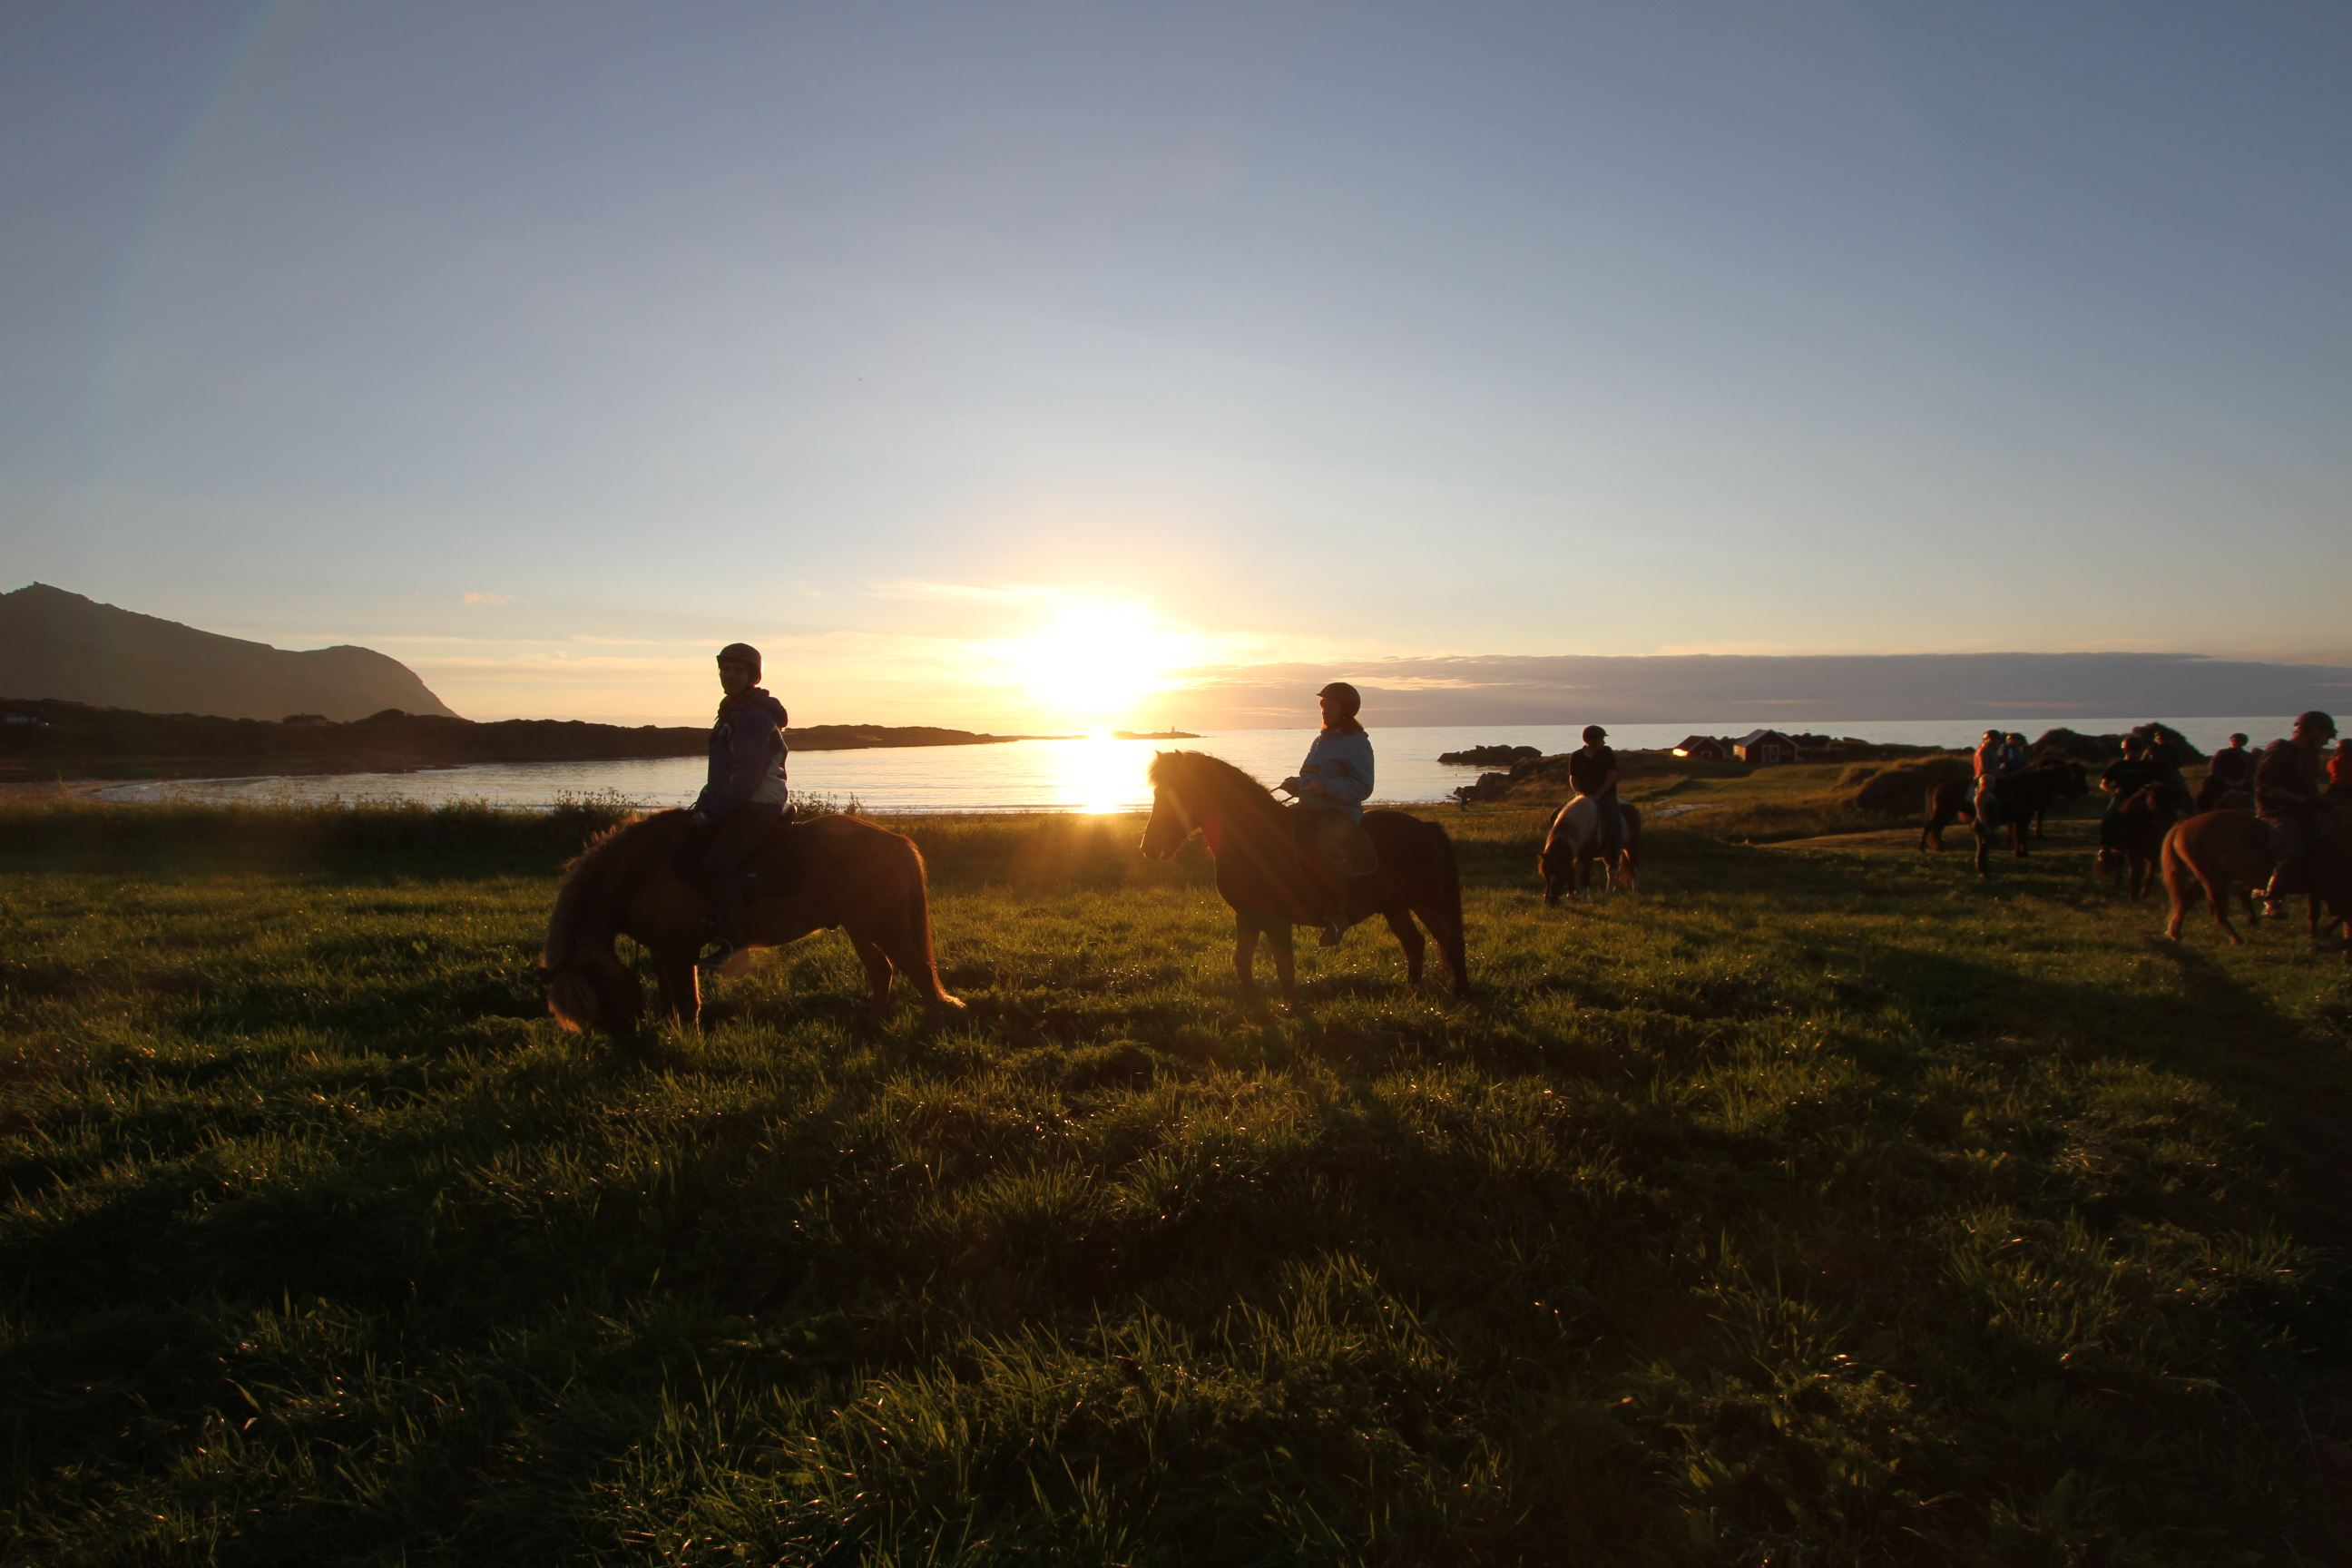 Lofoten by Horse - Horsebackriding on Icelandic Horses in Lofoten